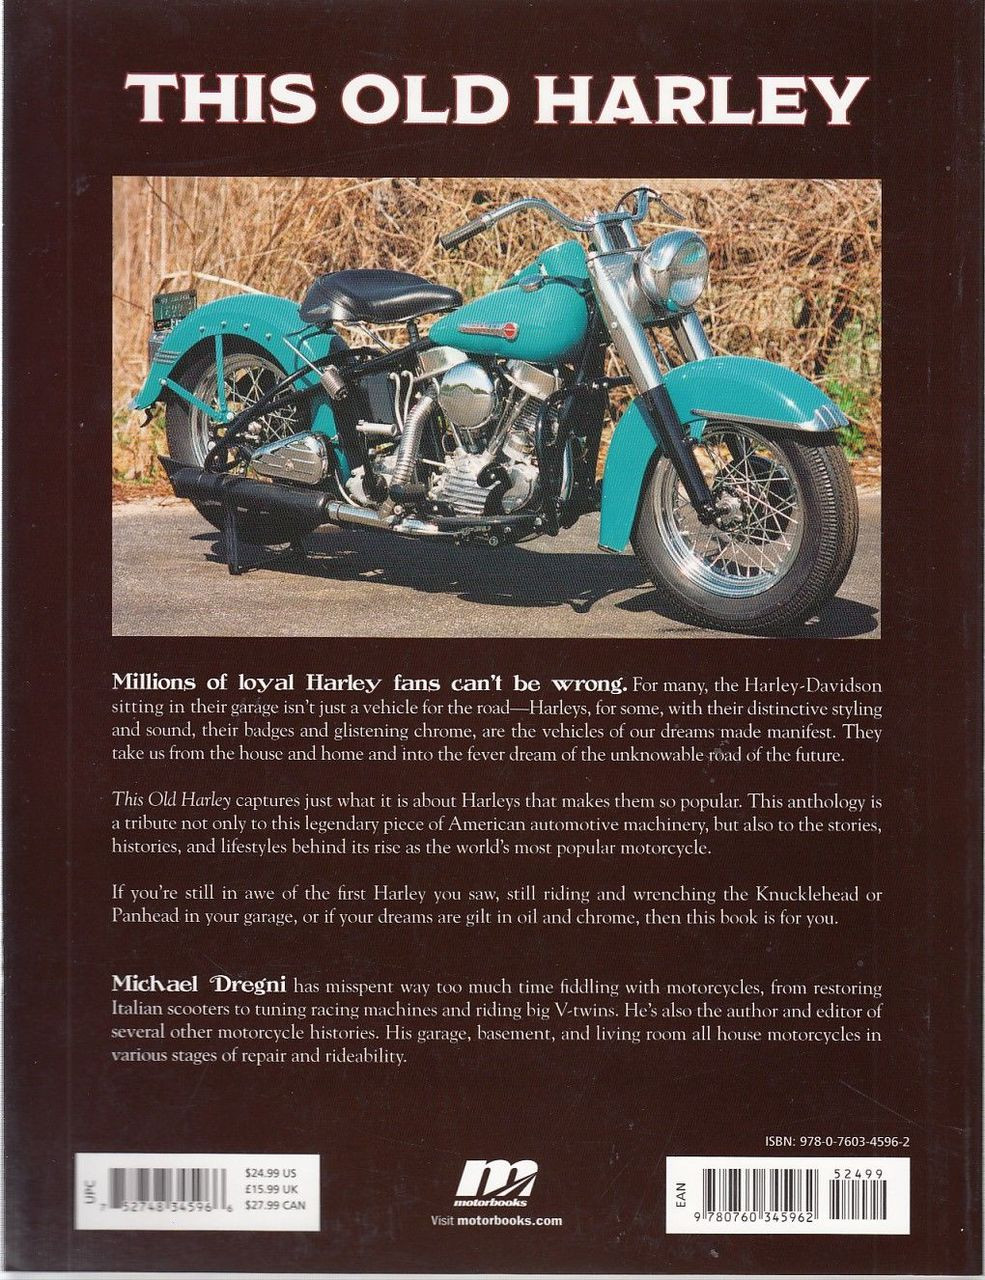 This Old Harley - The Ultimate Tribute to the World's Greatest Motorcycle